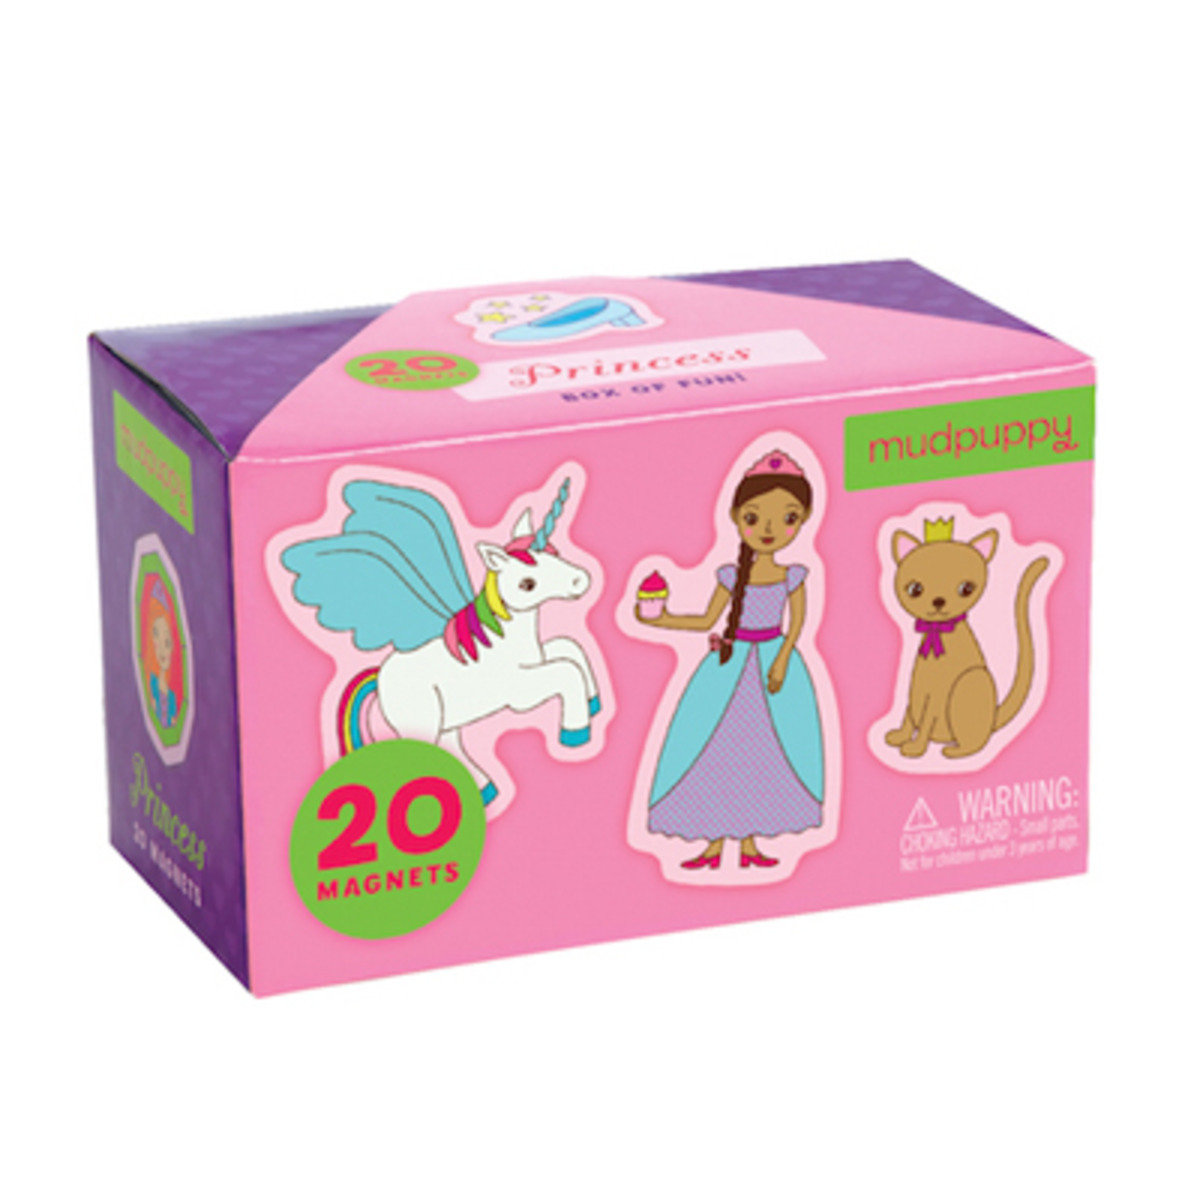 Princess Box of Magnets